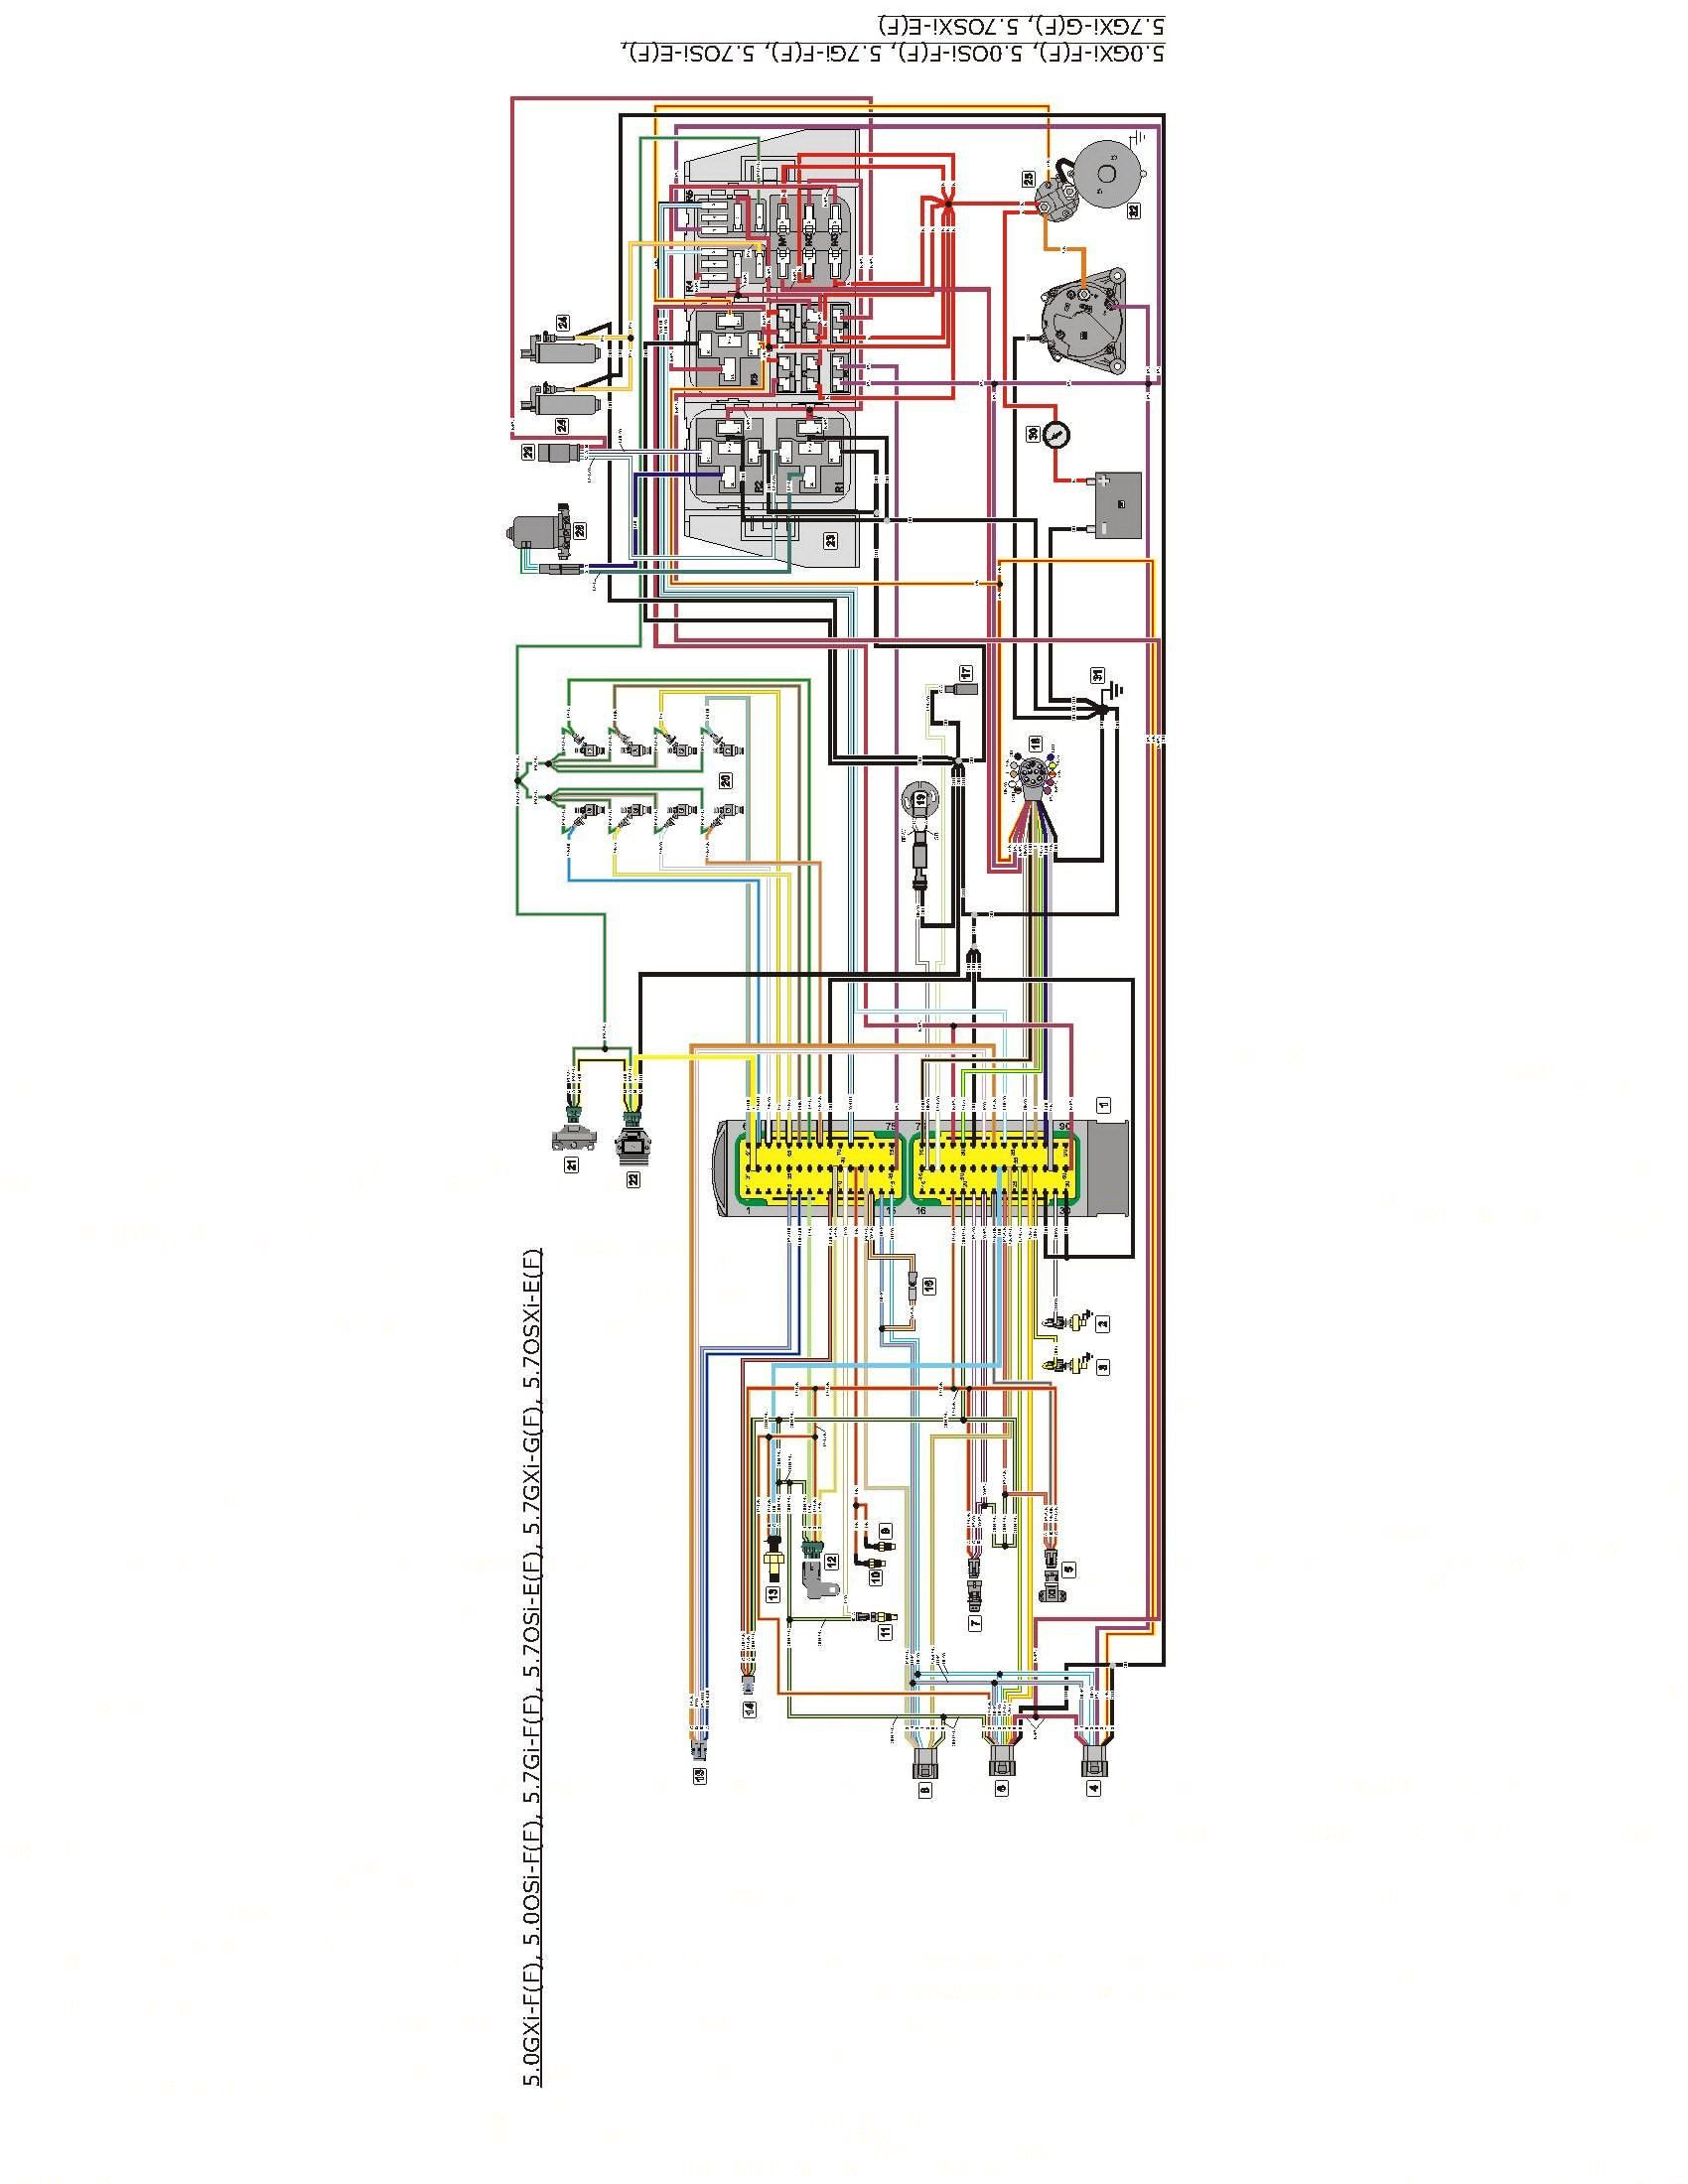 mercury outboard power trim wiring diagram ez wire harness lovely for volvo penta motor